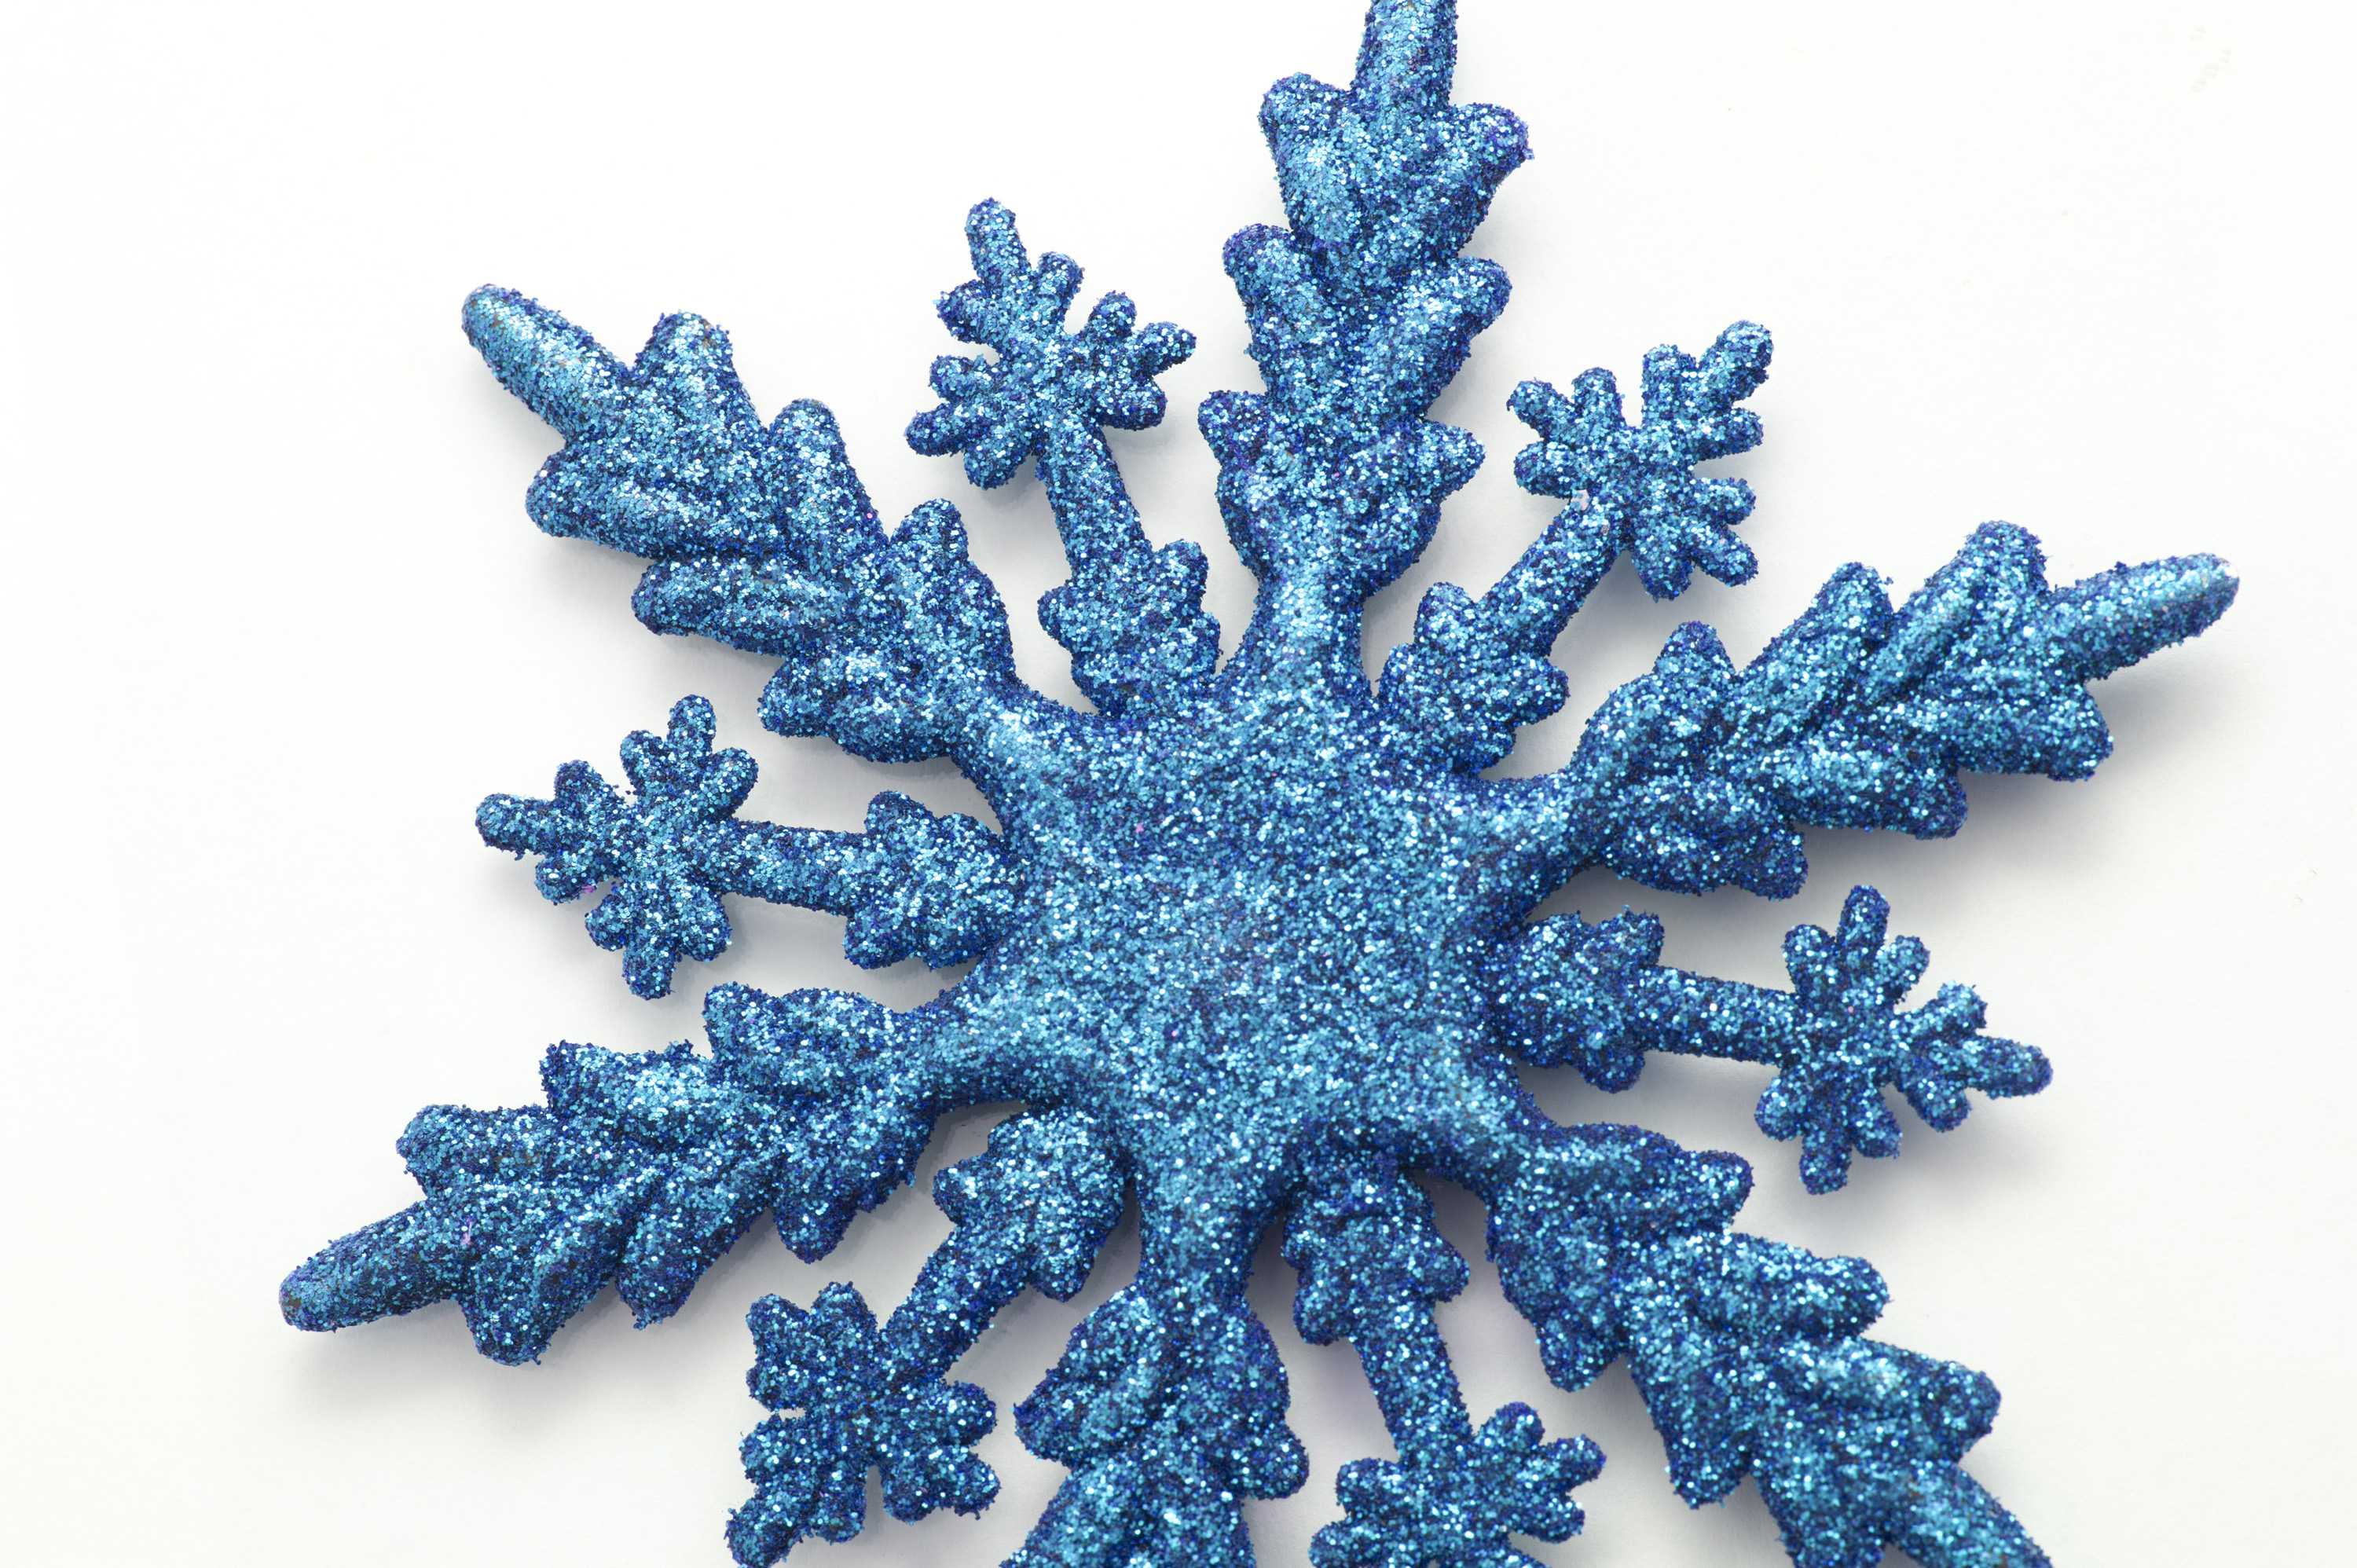 Christmas snowflake ornaments - Decorative Blue Christmas Snowflake Ornament With A Textured Shiny Surface On A White Background